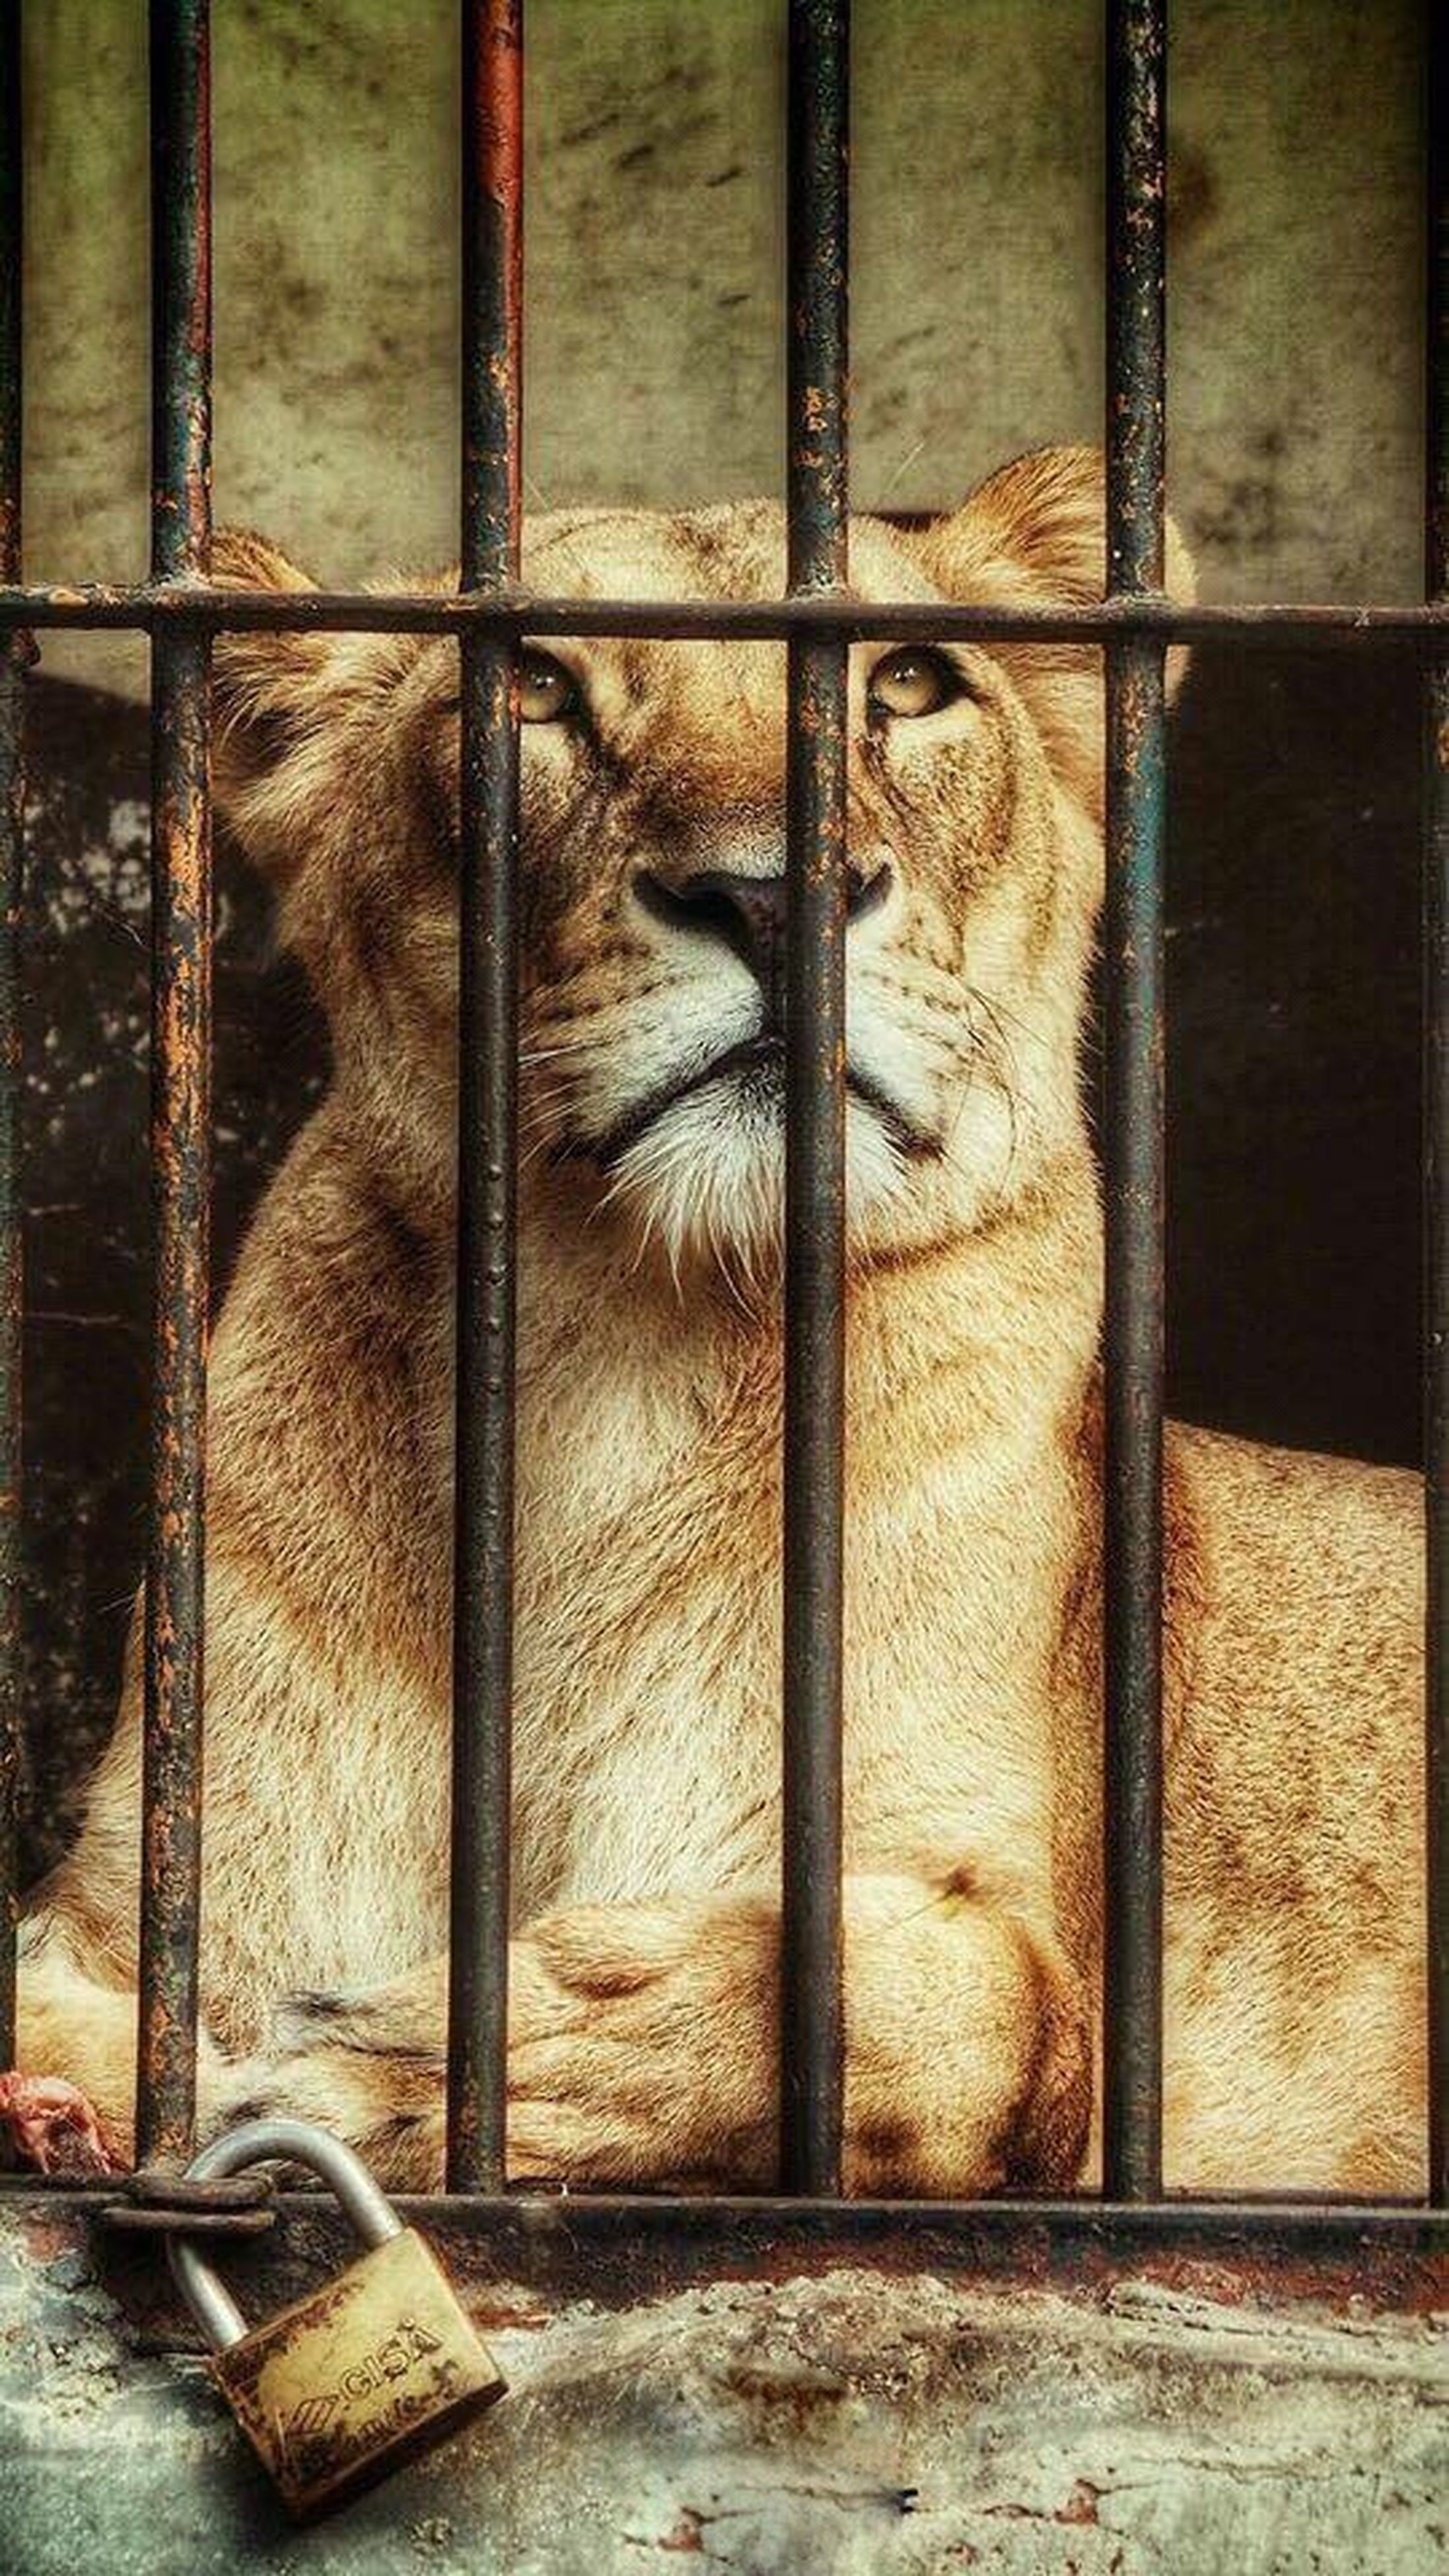 cage, animals in captivity, animal themes, one animal, zoo, metal grate, metal, mammal, no people, day, captivity, trapped, animals in the wild, animal wildlife, prison, indoors, security bar, prison bars, close-up